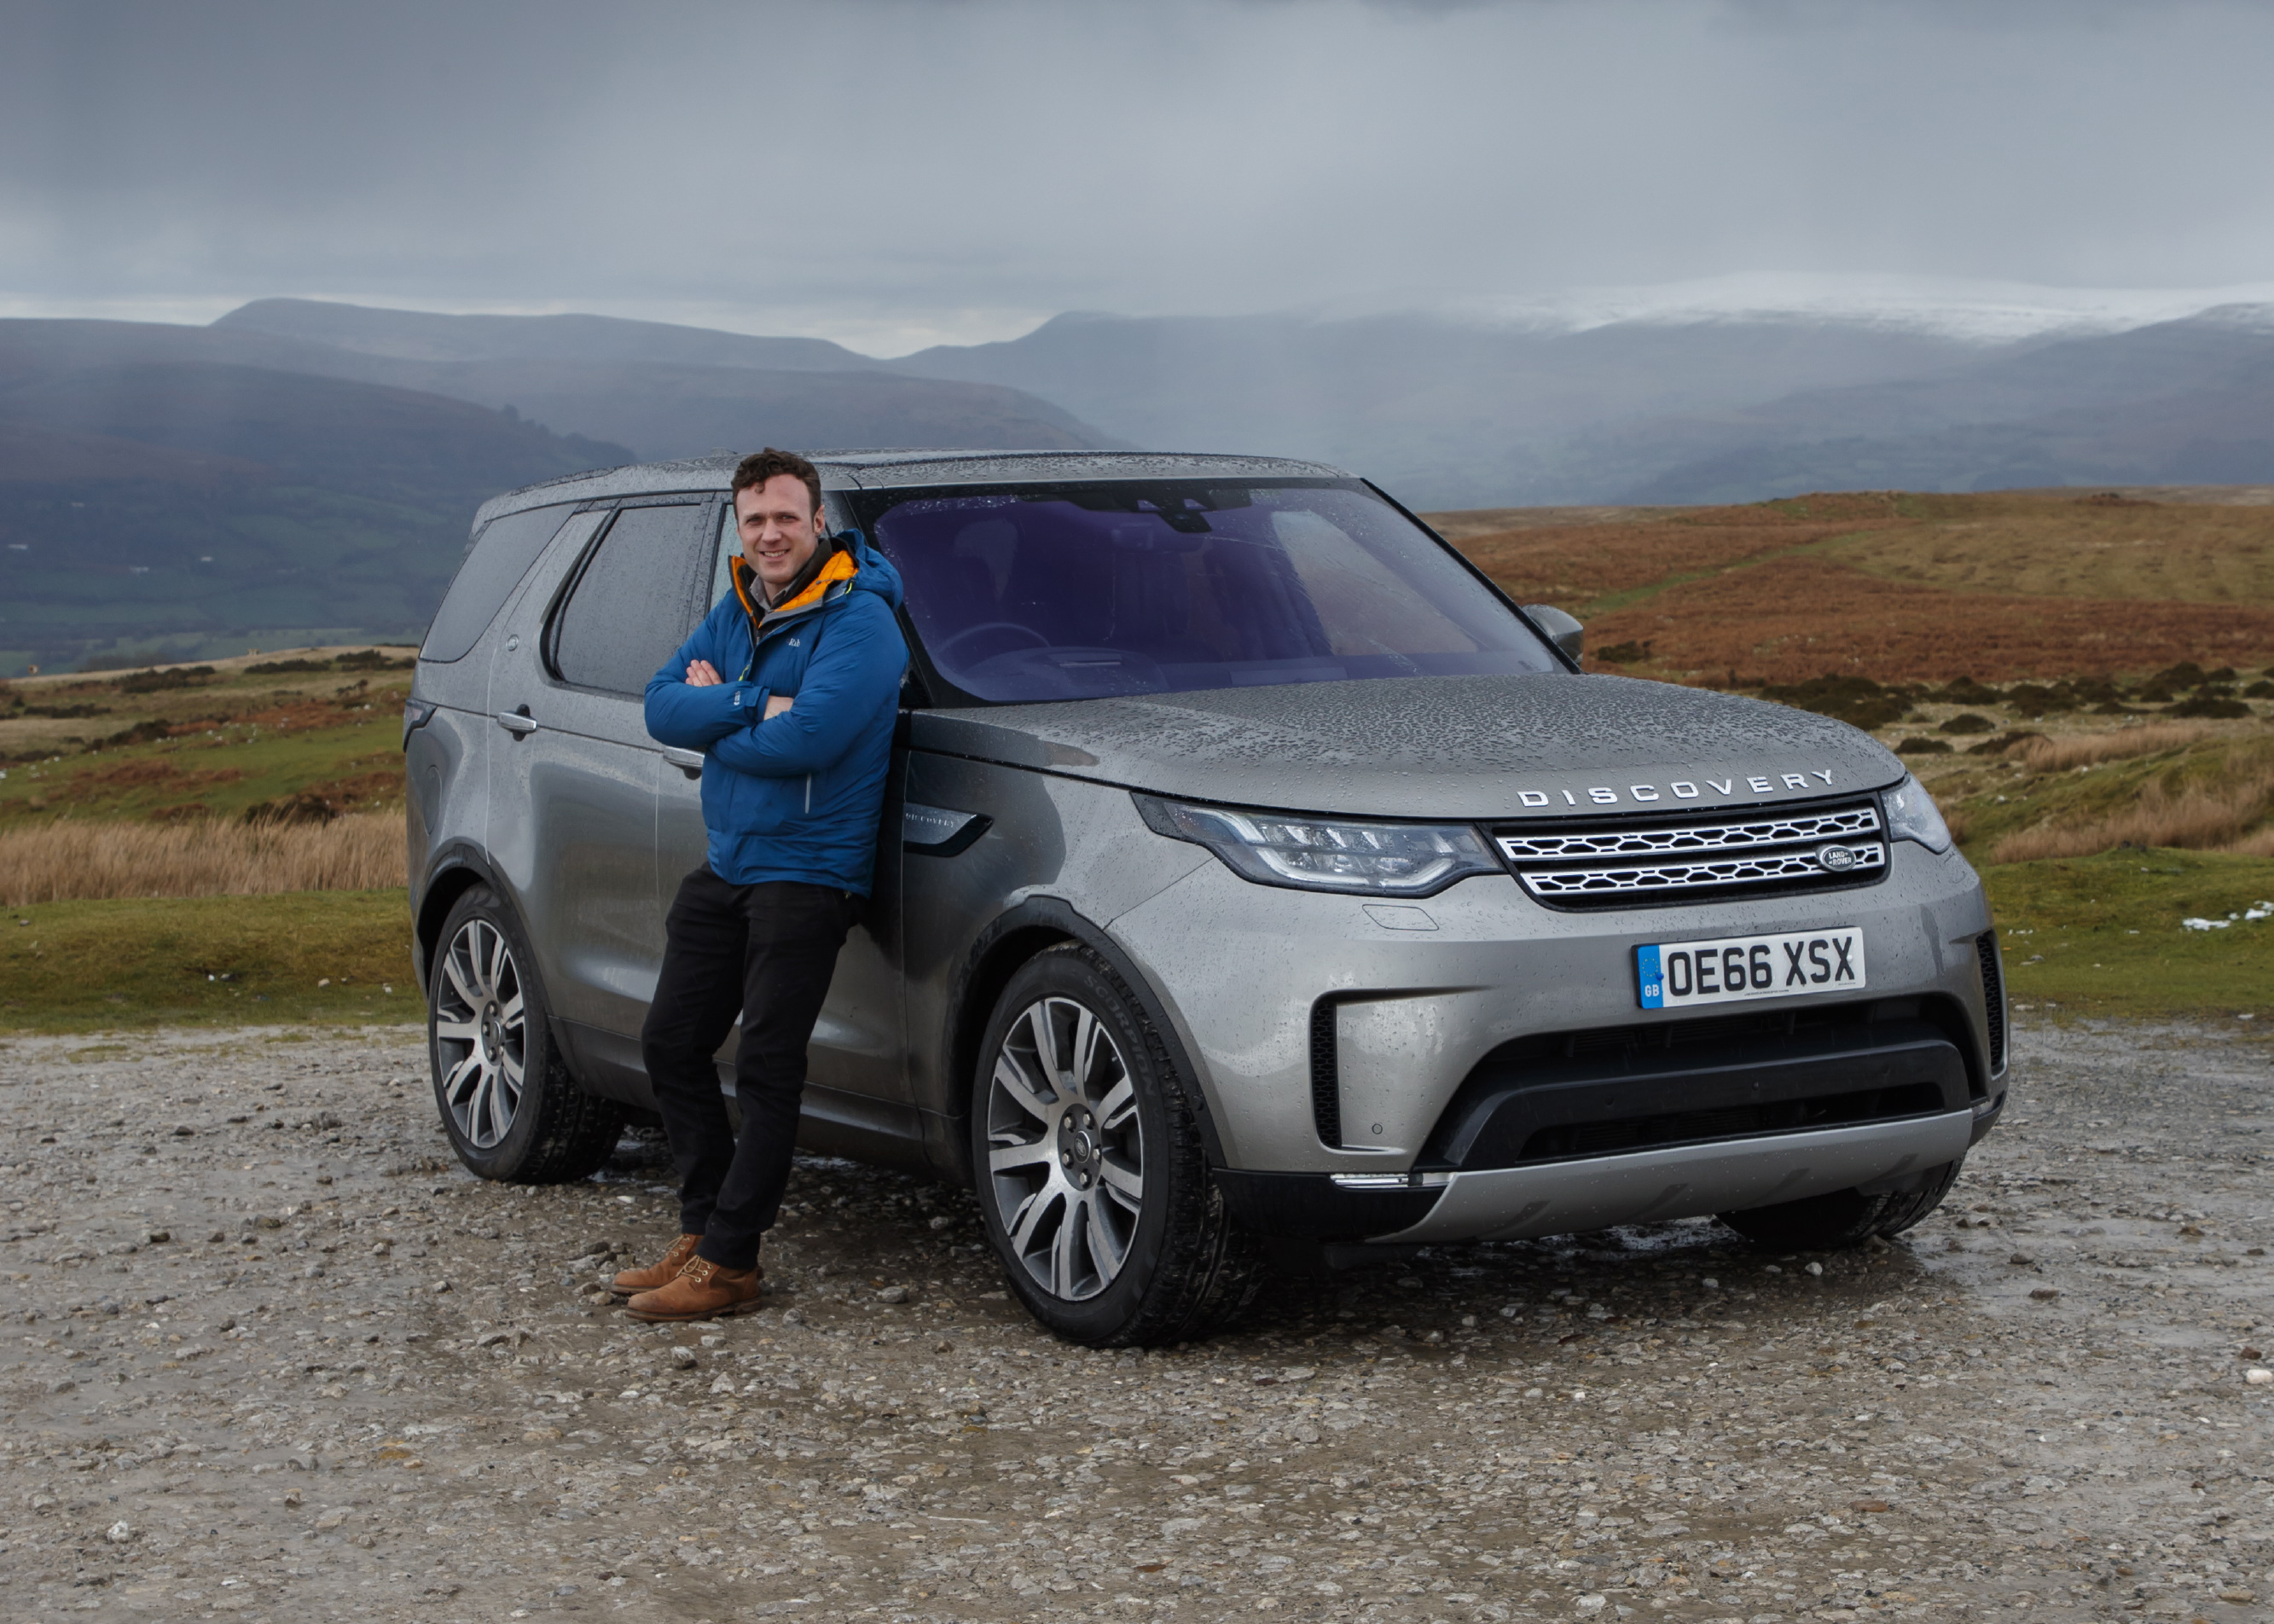 New Land Rover Discovery driven – Adventure 52 Magazine